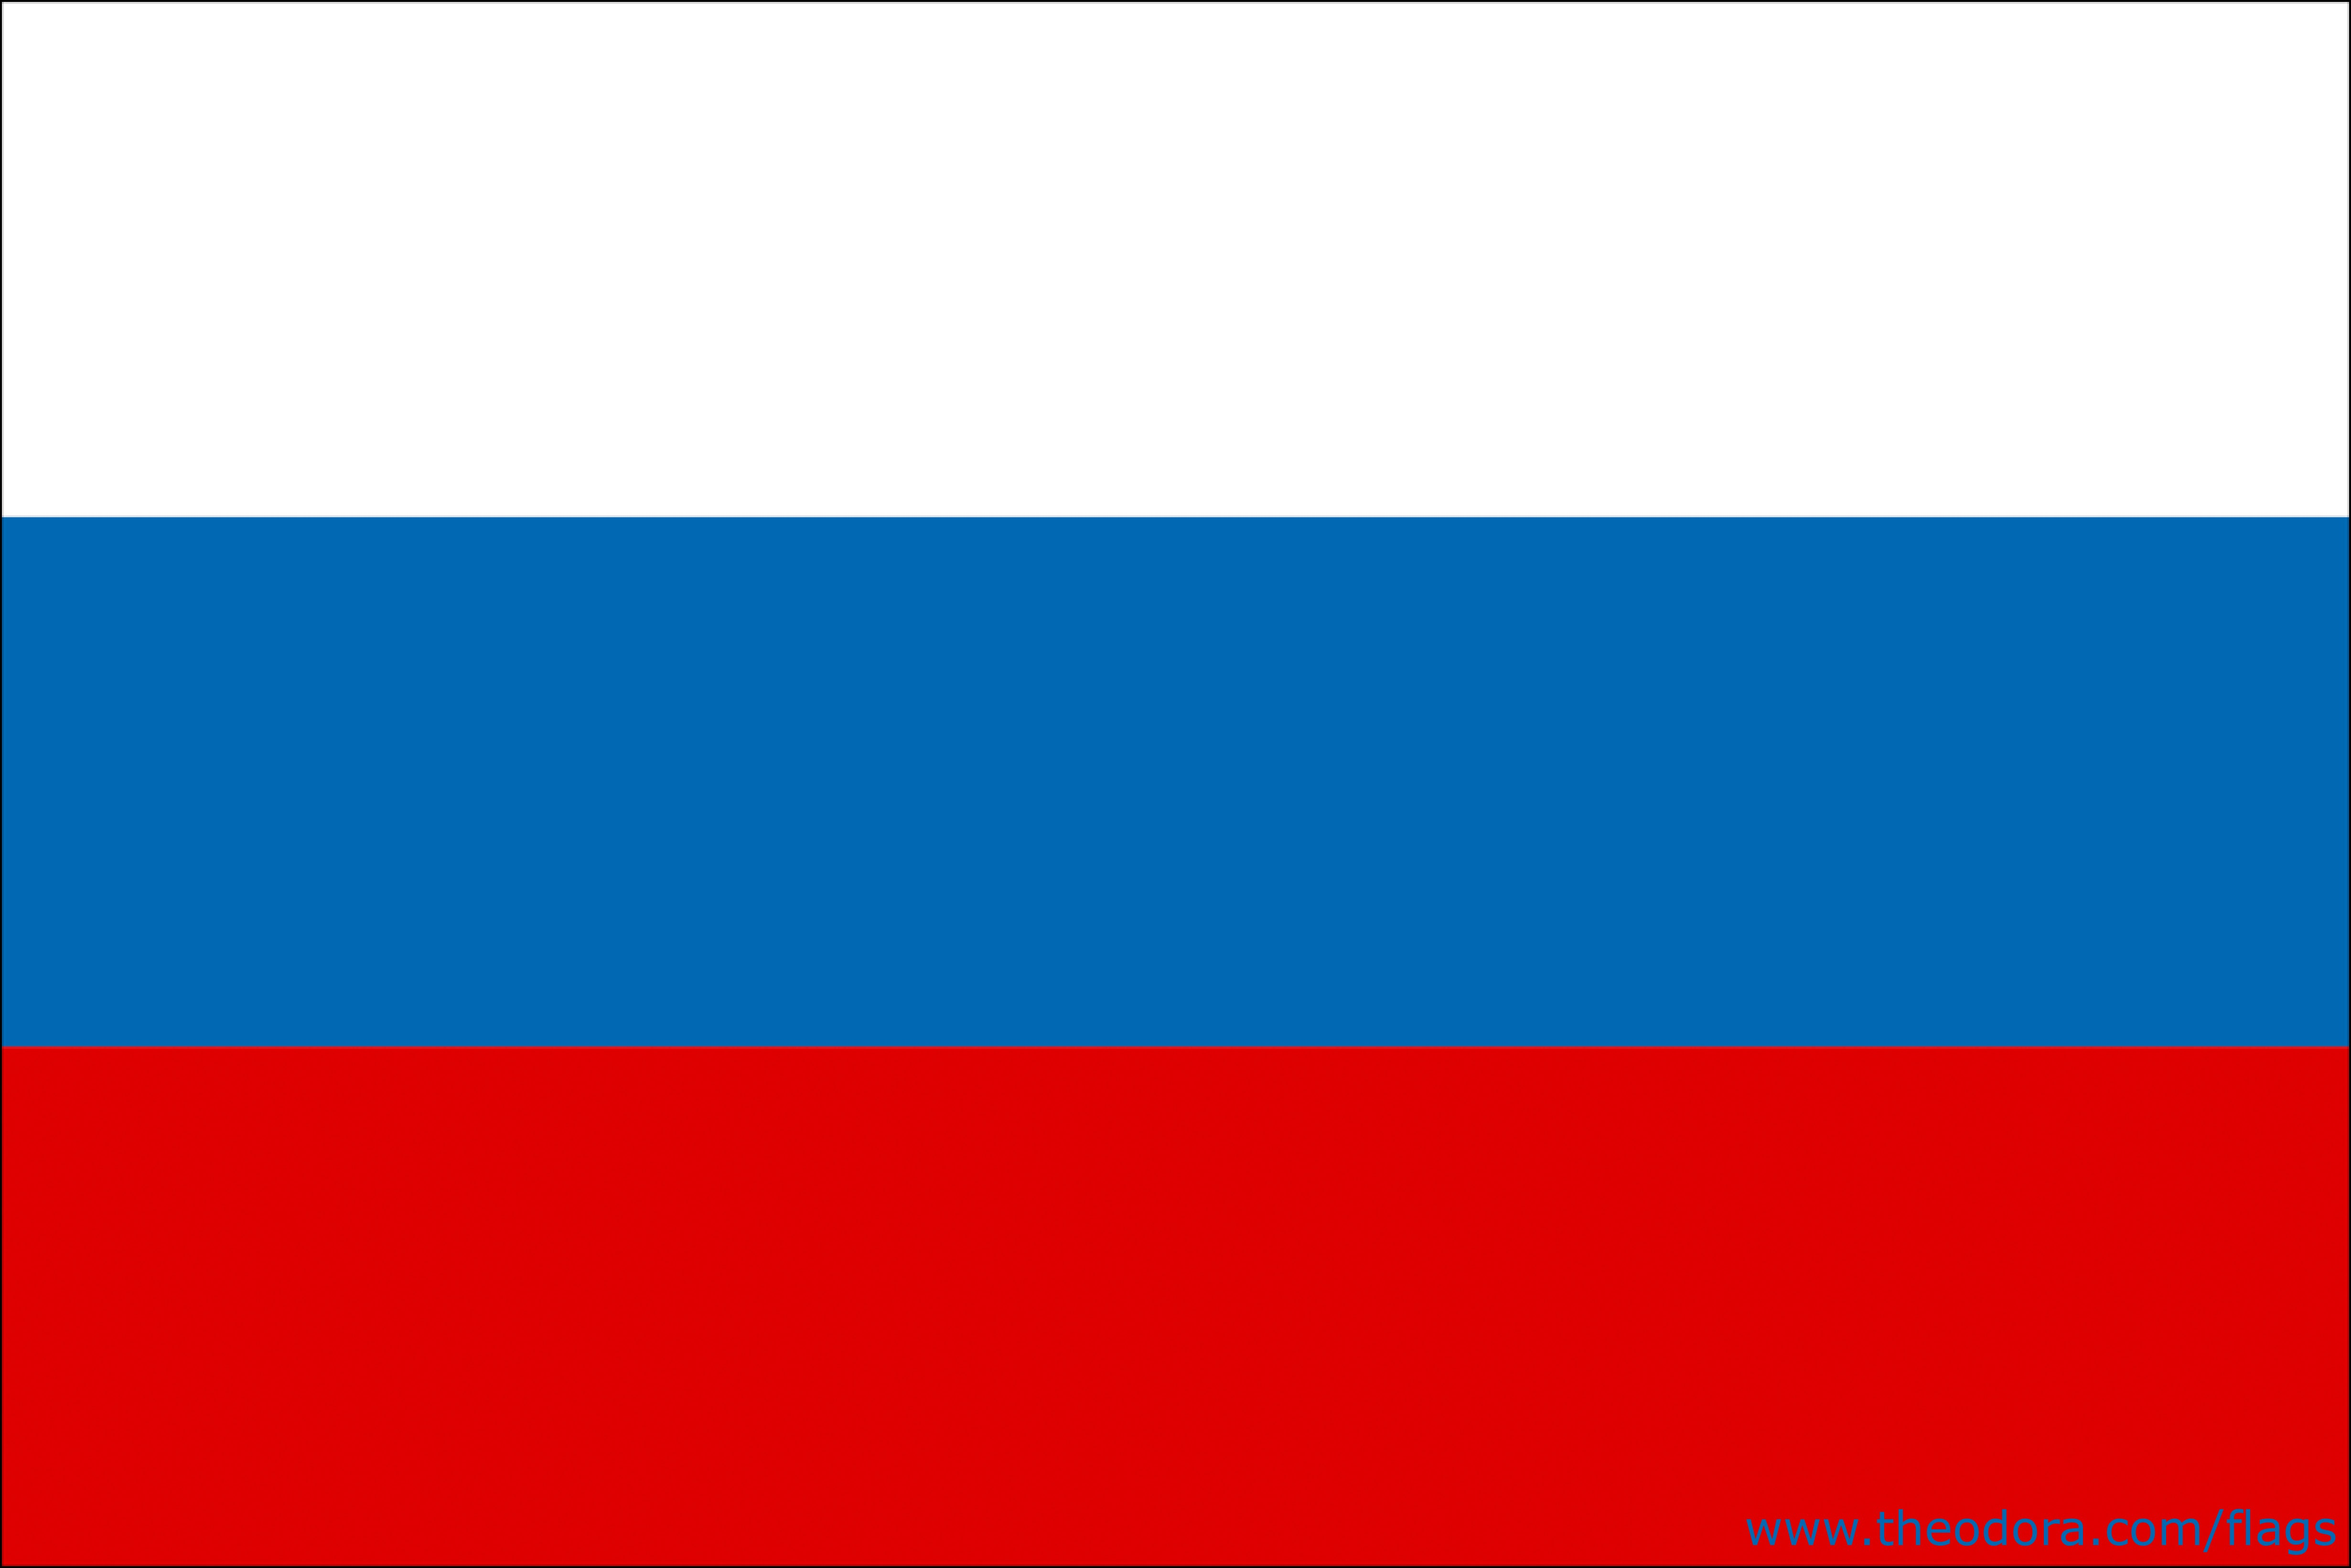 Flag Of Russia Backgrounds, Compatible - PC, Mobile, Gadgets| 4921x3283 px